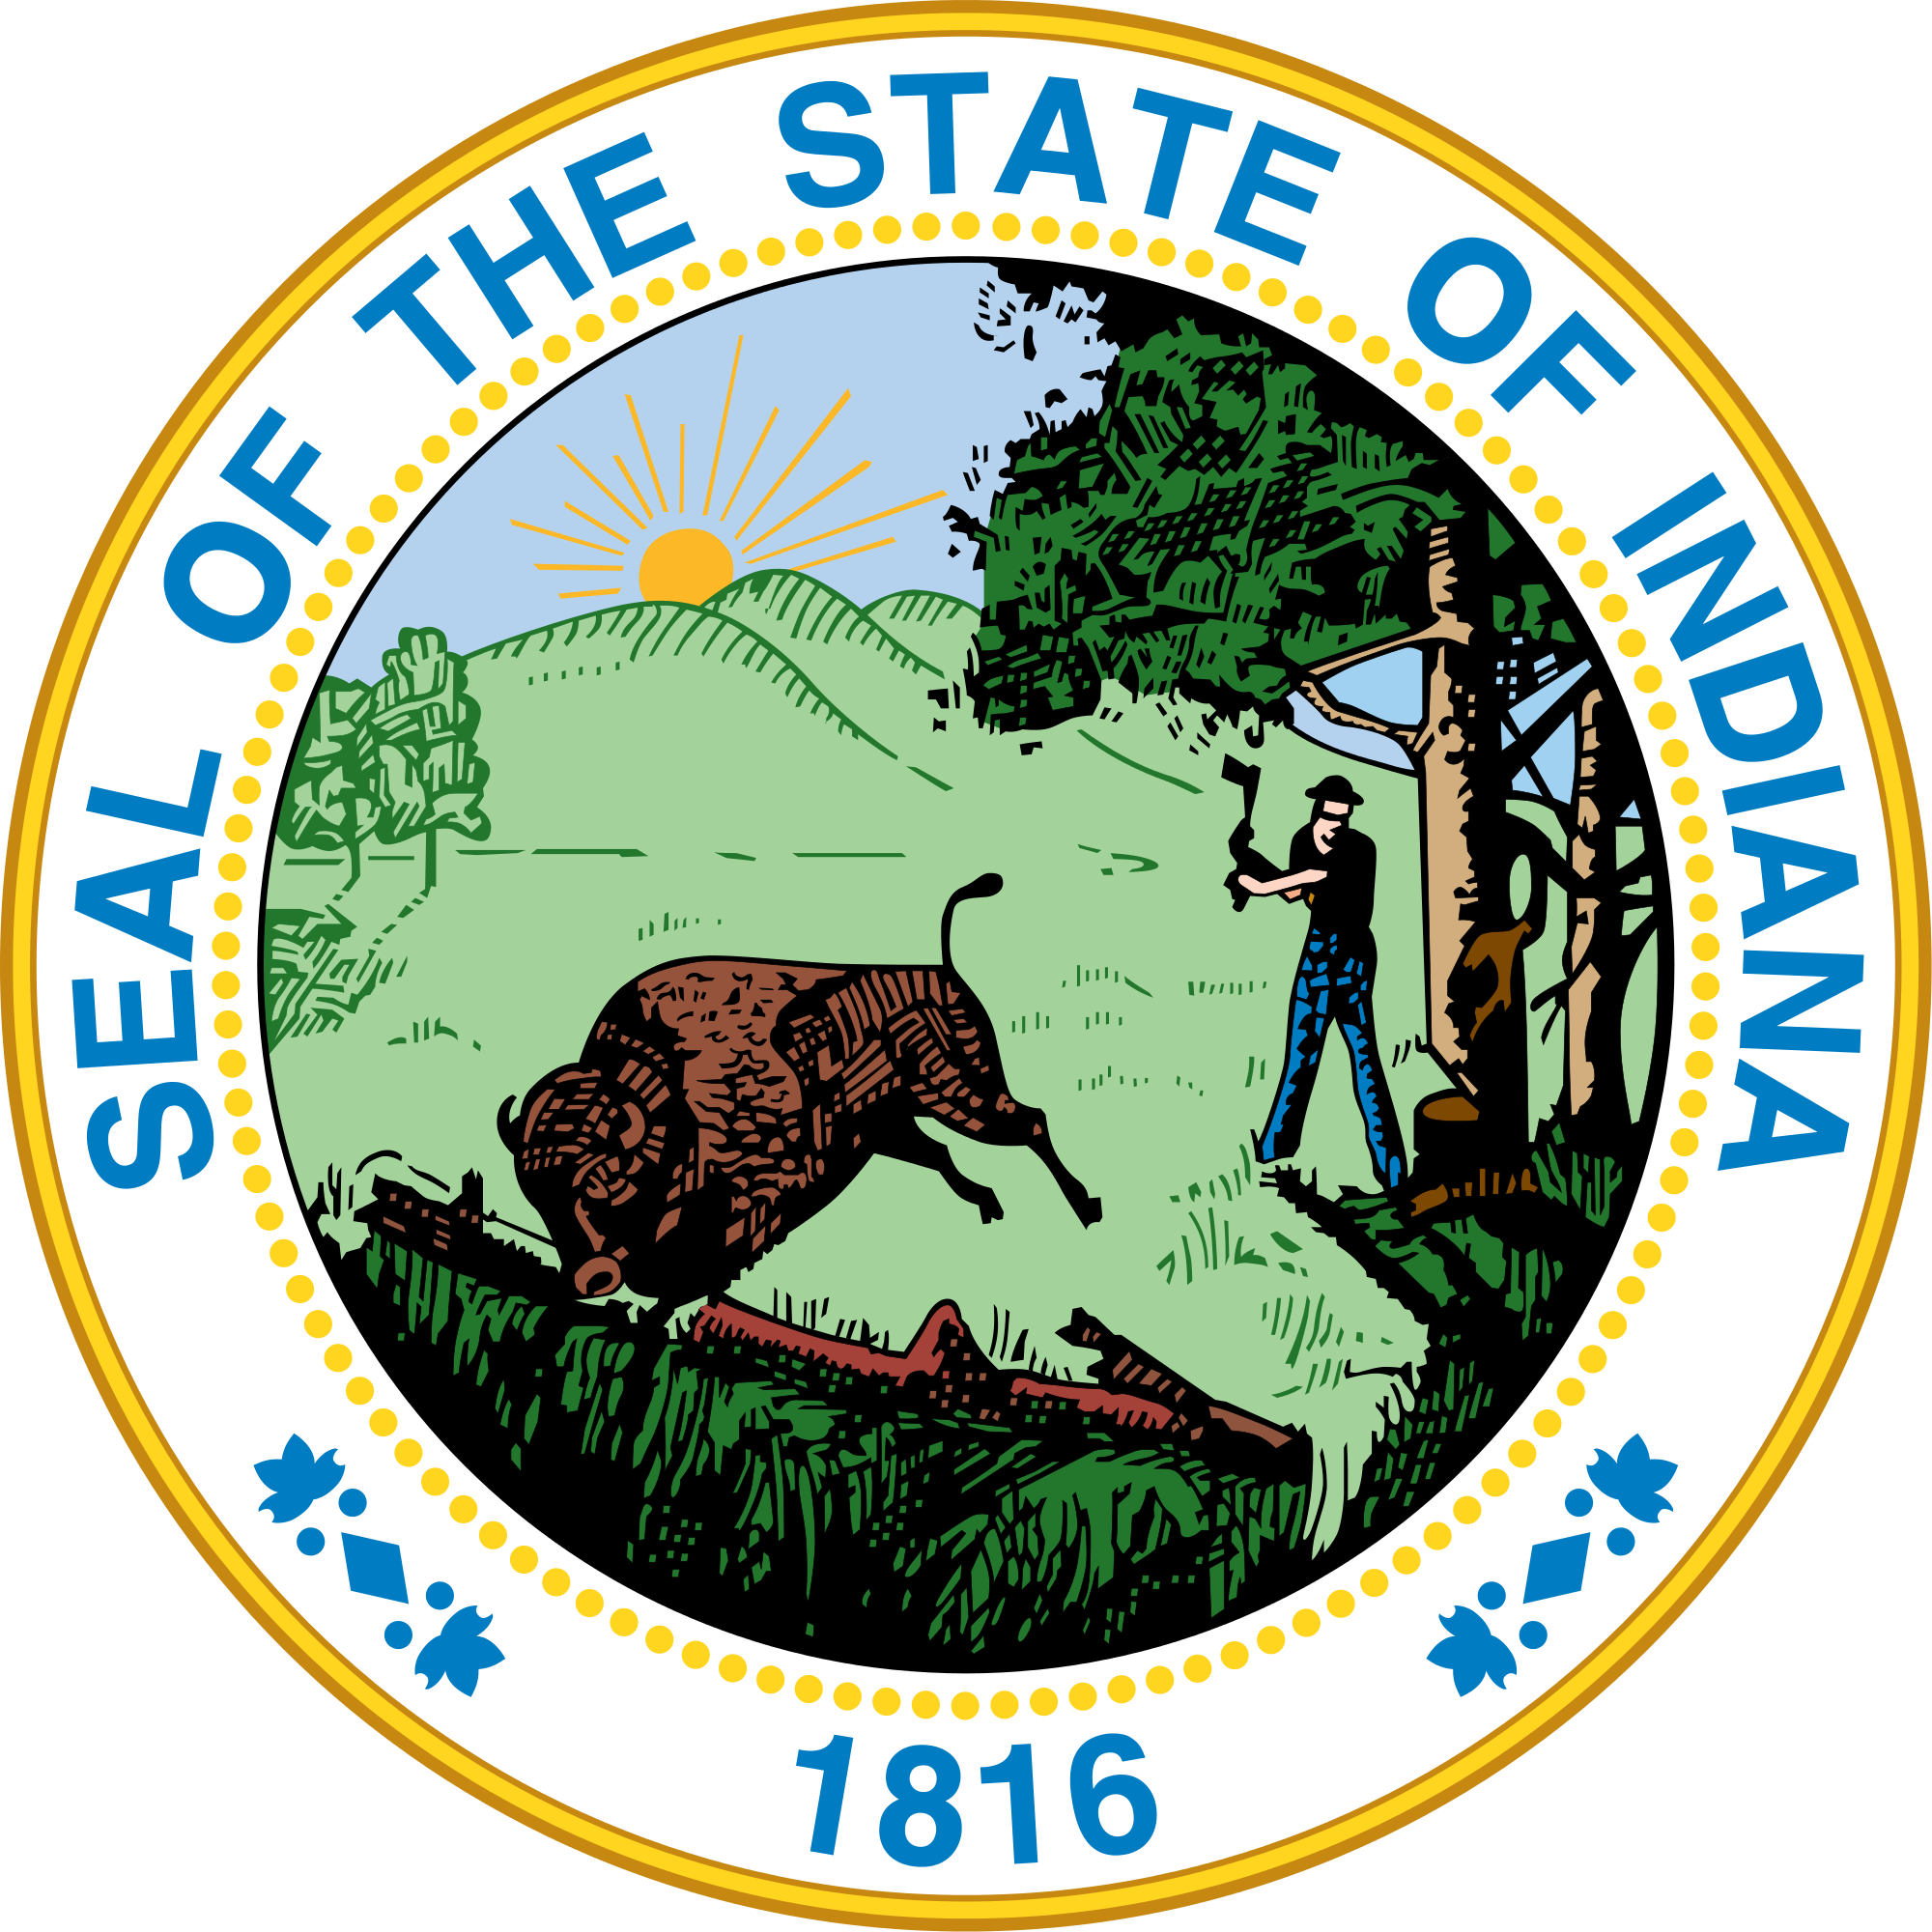 indiana music industry contacts